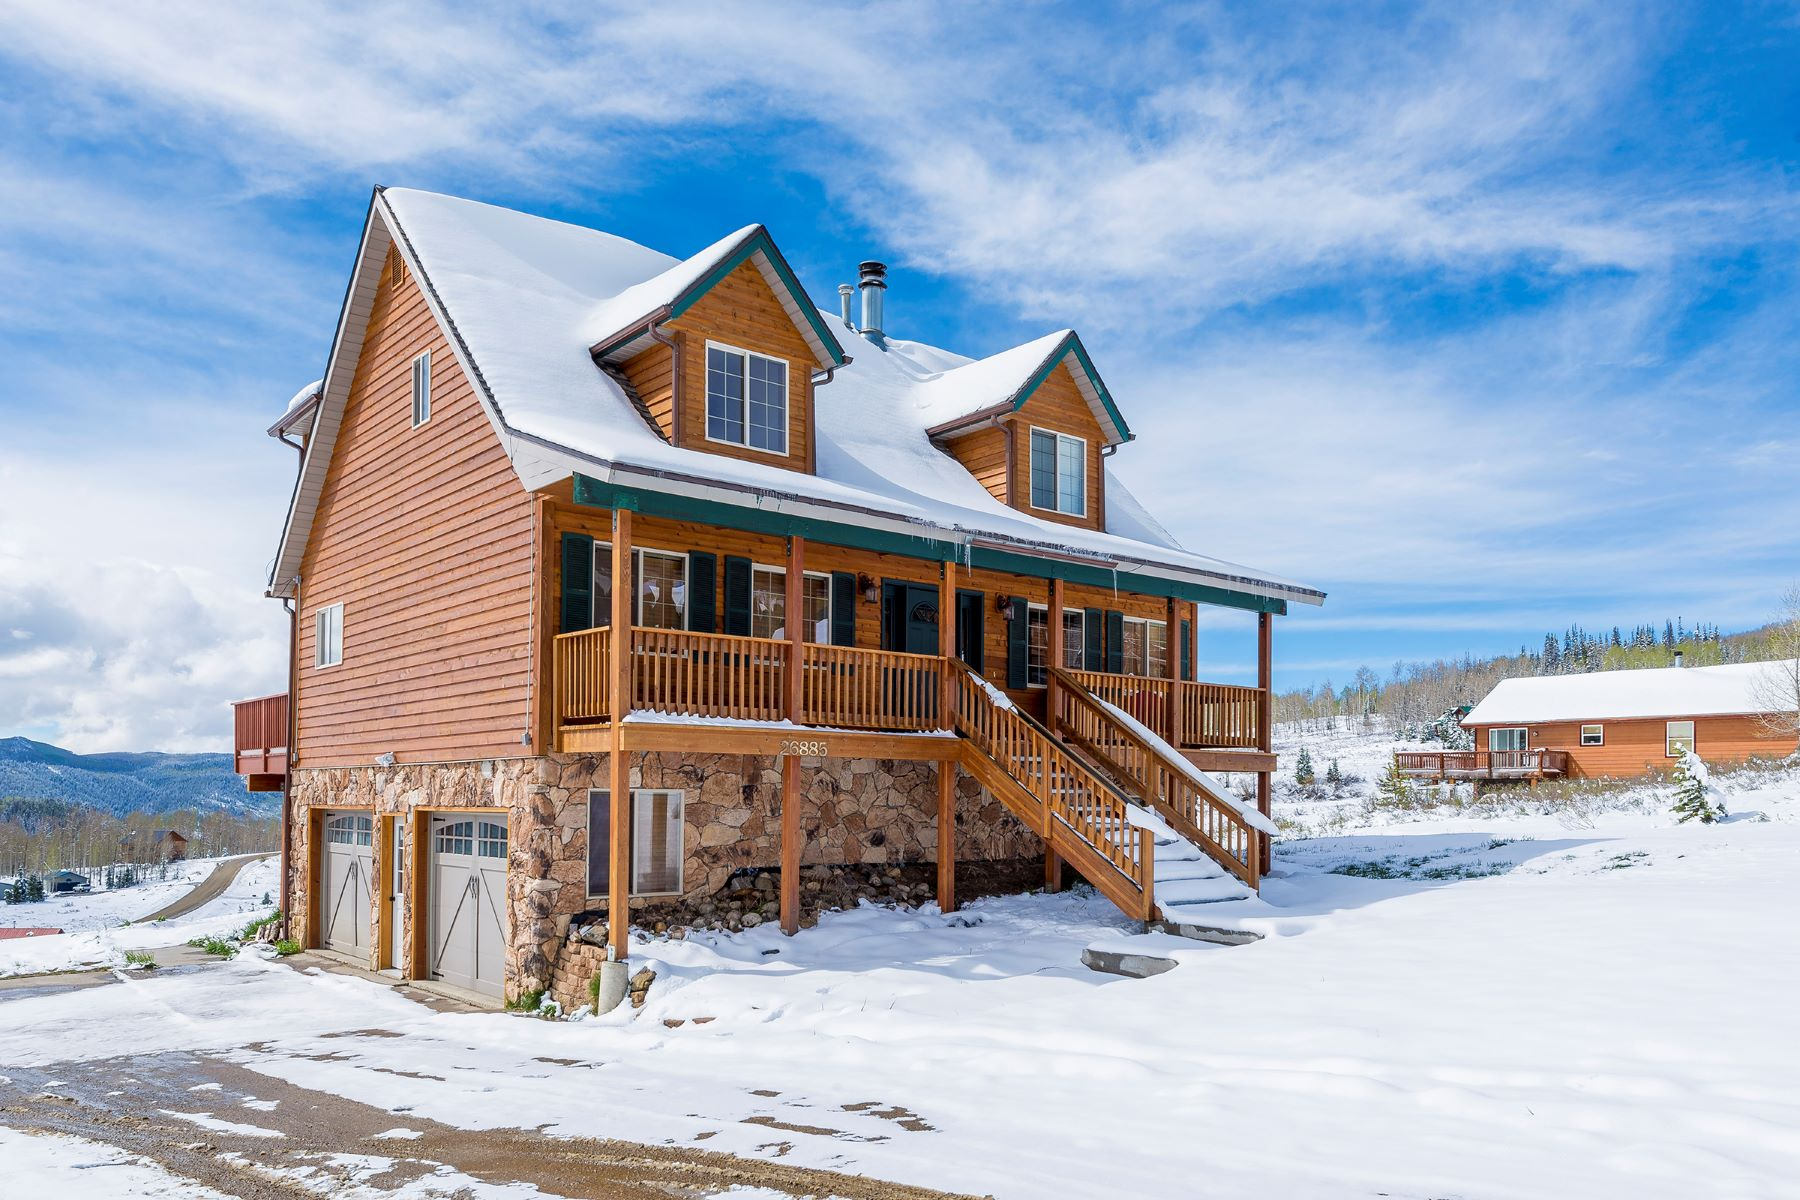 Single Family Home for Sale at Just North of Steamboat Springs, CO 26885 Neptune Place Clark, Colorado, 80428 United States